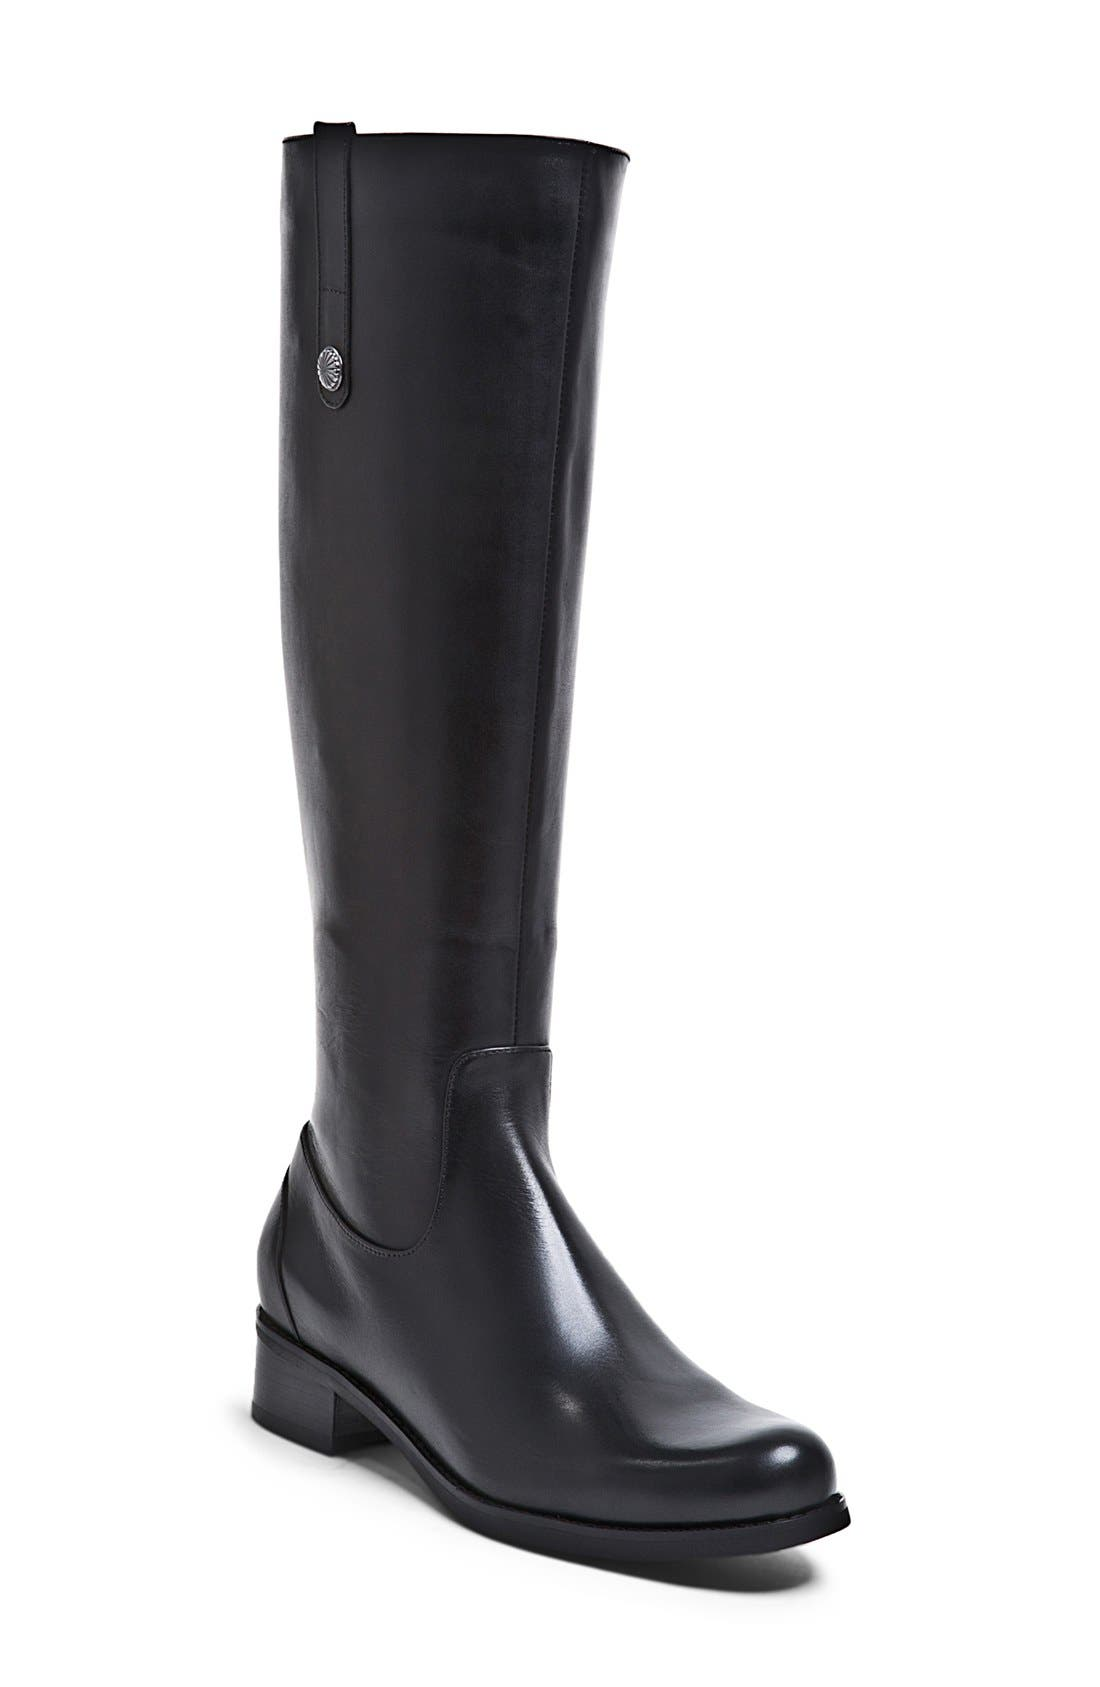 Alternate Image 1 Selected - Blondo 'Victorina' Waterproof Leather Riding Boot (Women)